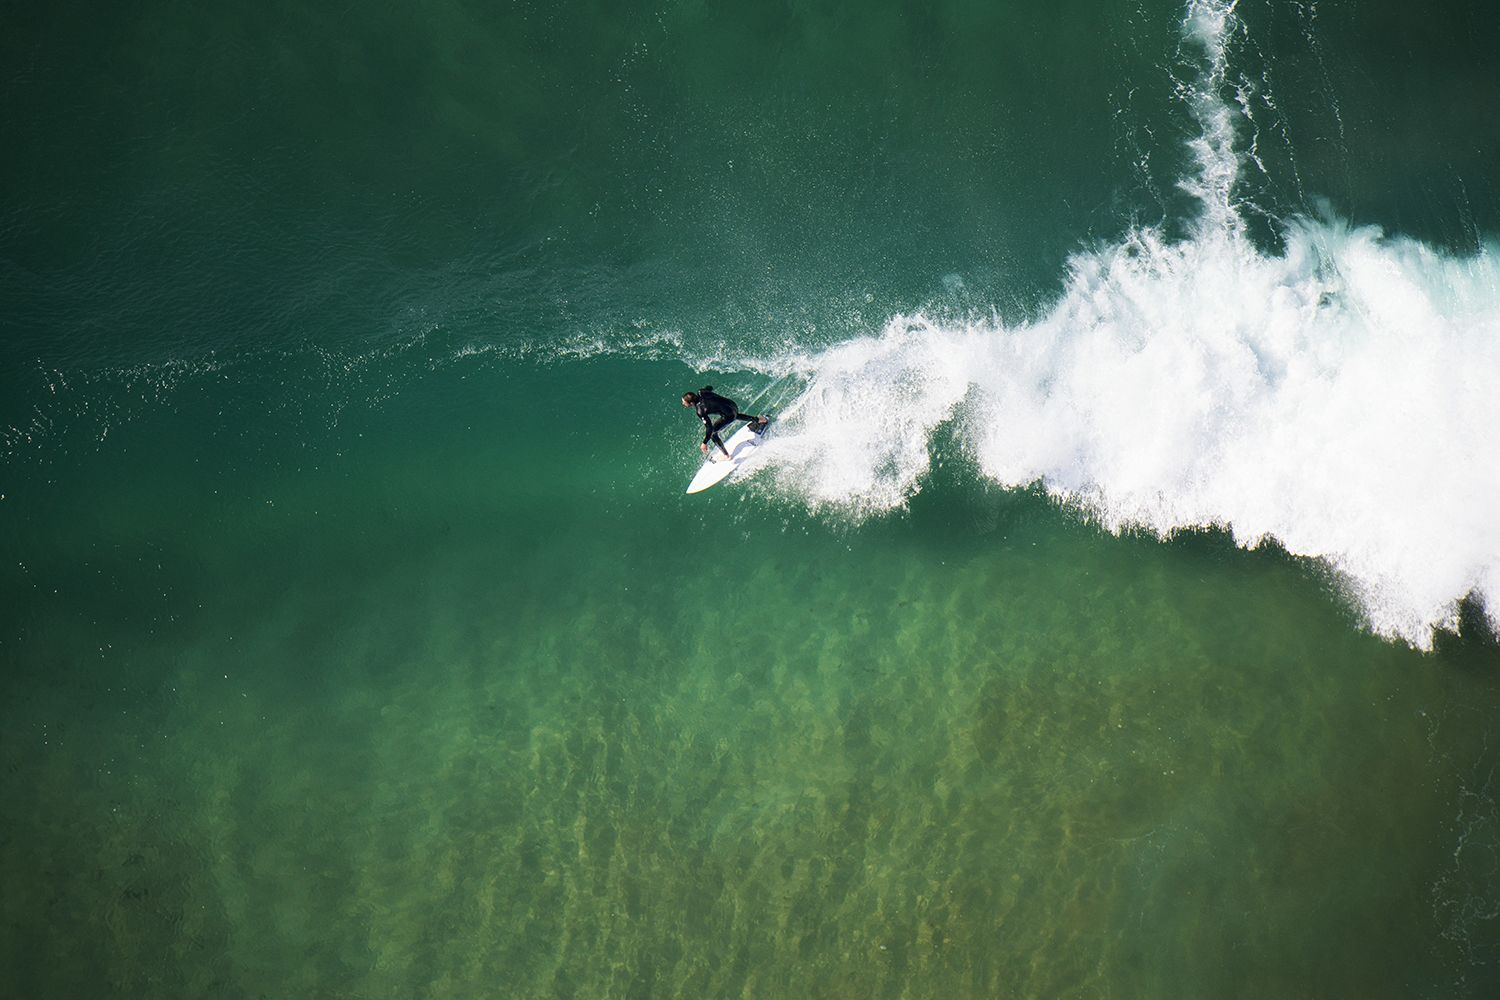 Aerial of a surfer catching a wave on North Avoca beach, Central Coast